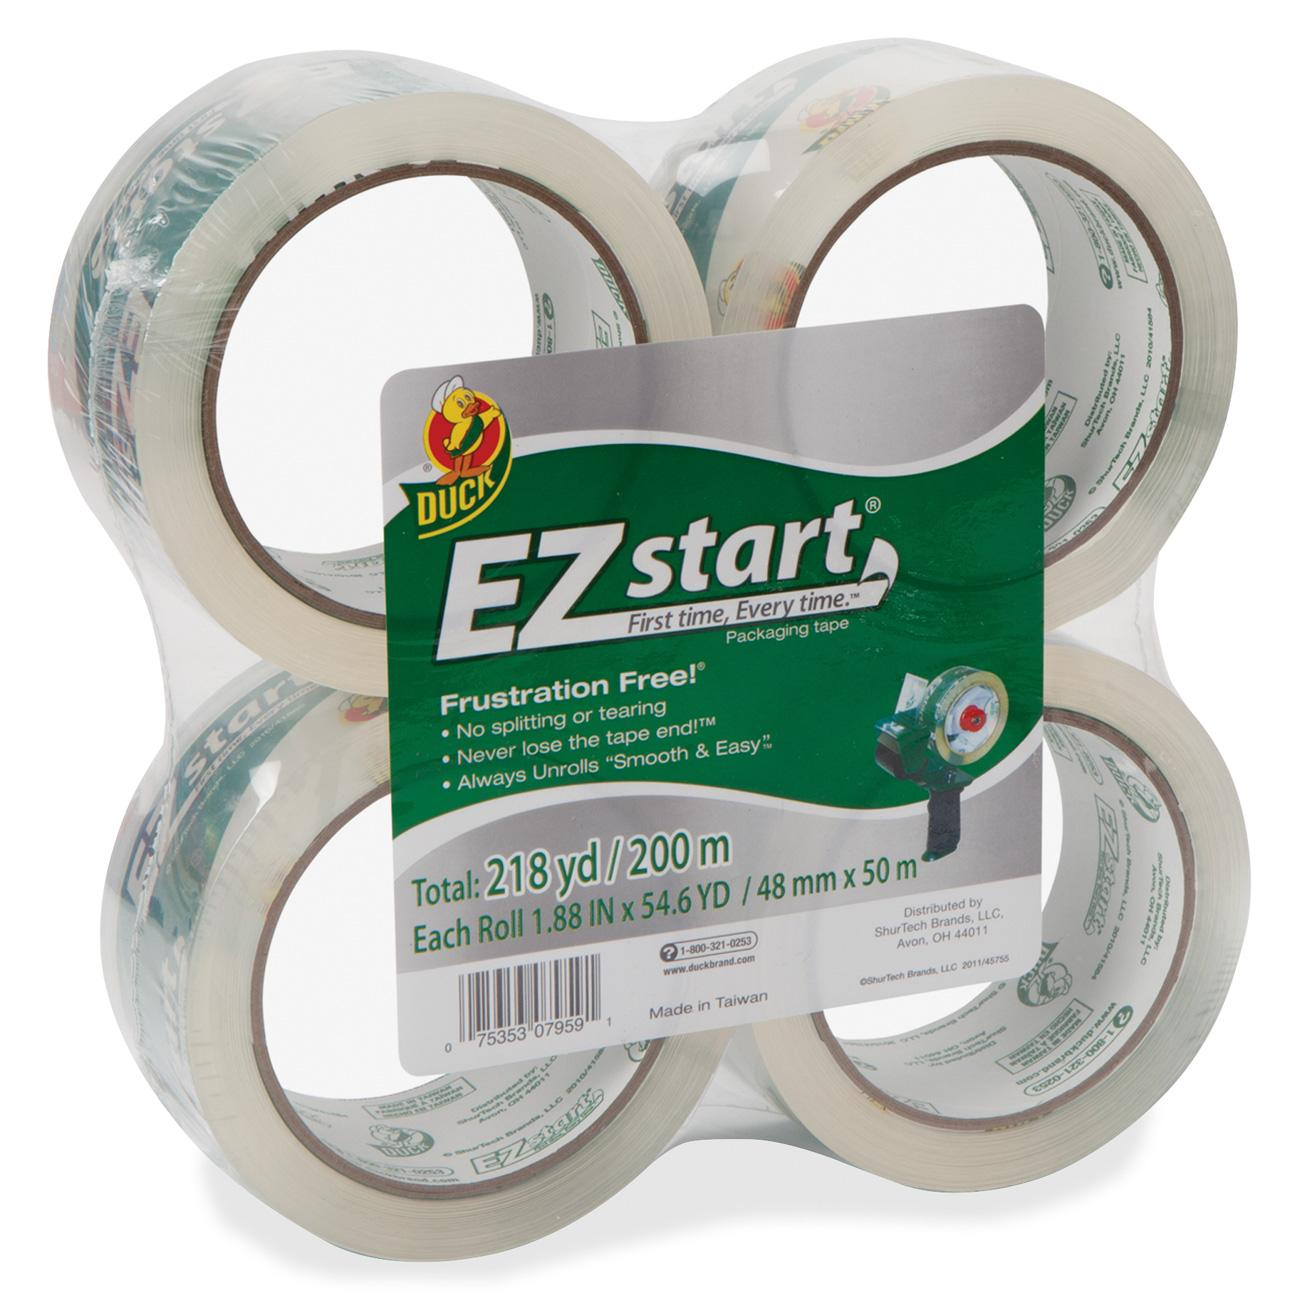 Duck EZ Start Crystal Clear Packaging Tape